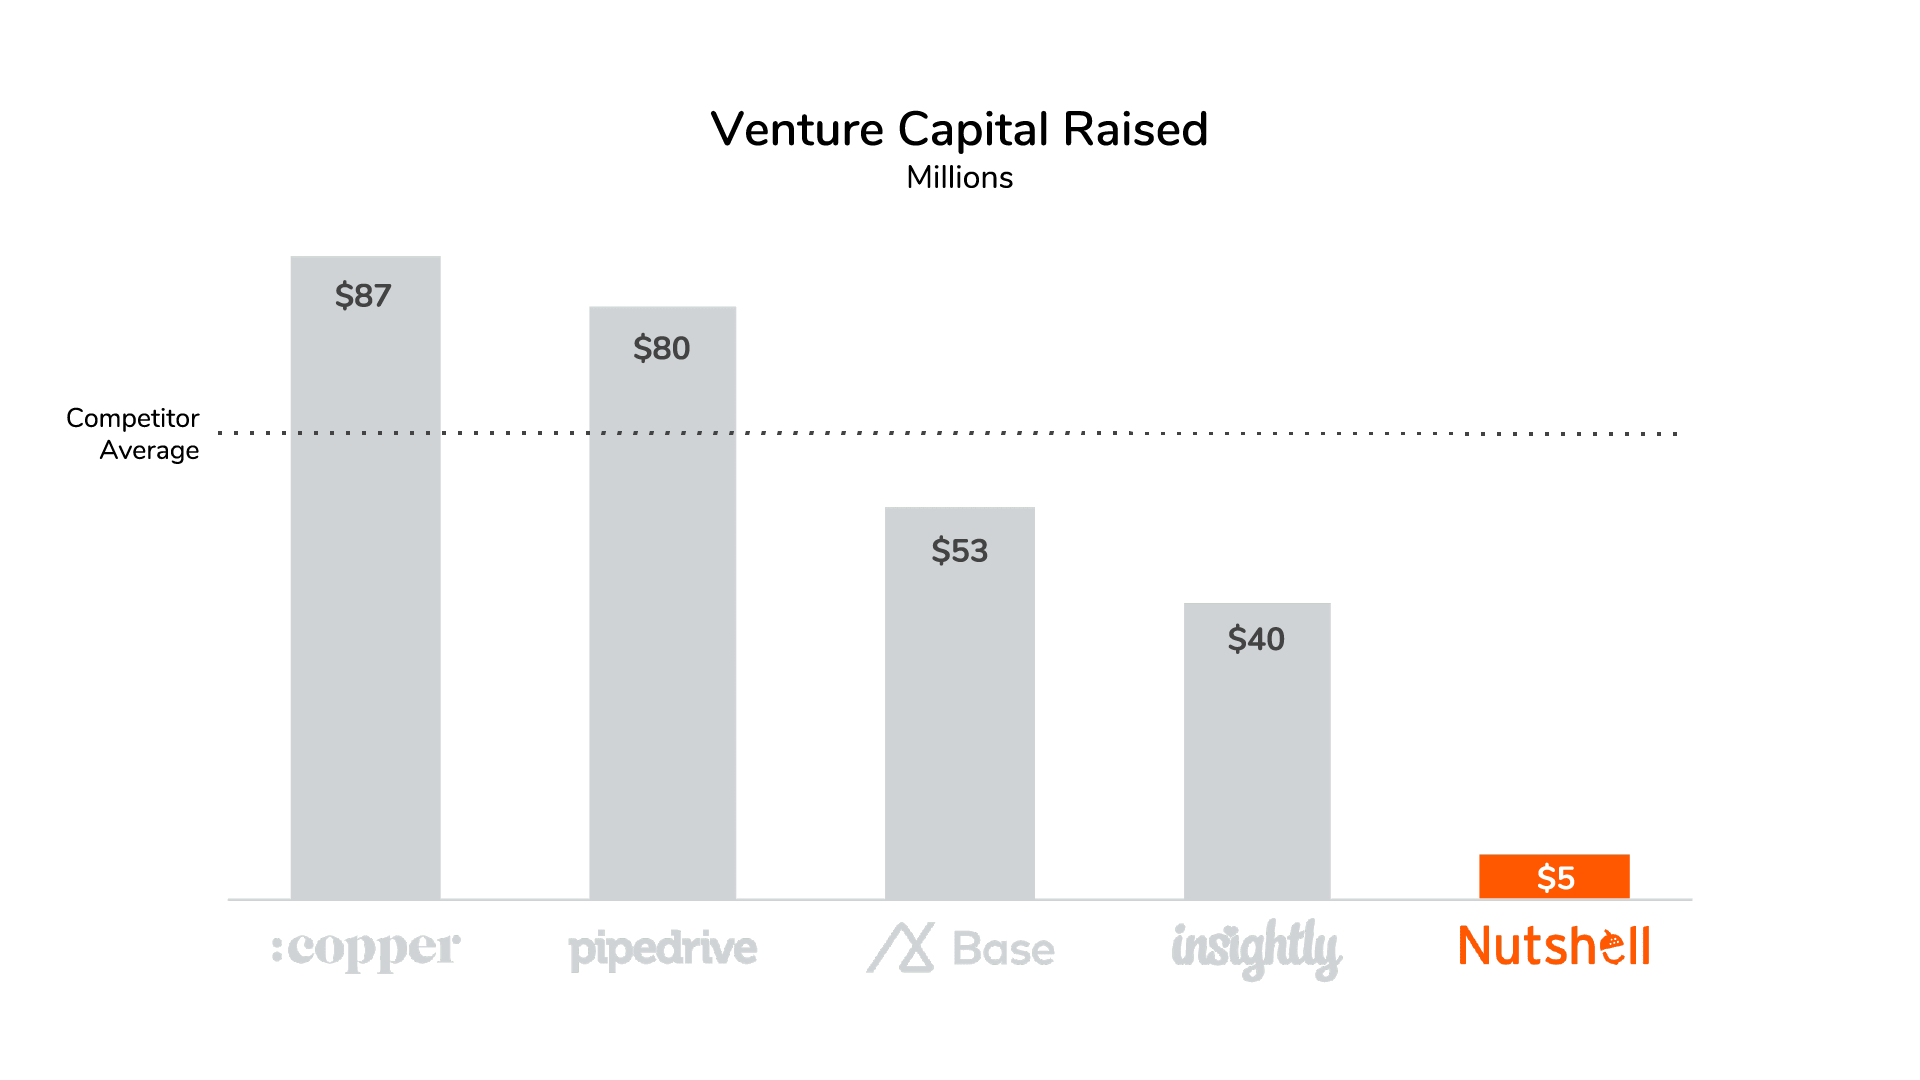 Nutshell venture capital raised vs competitors